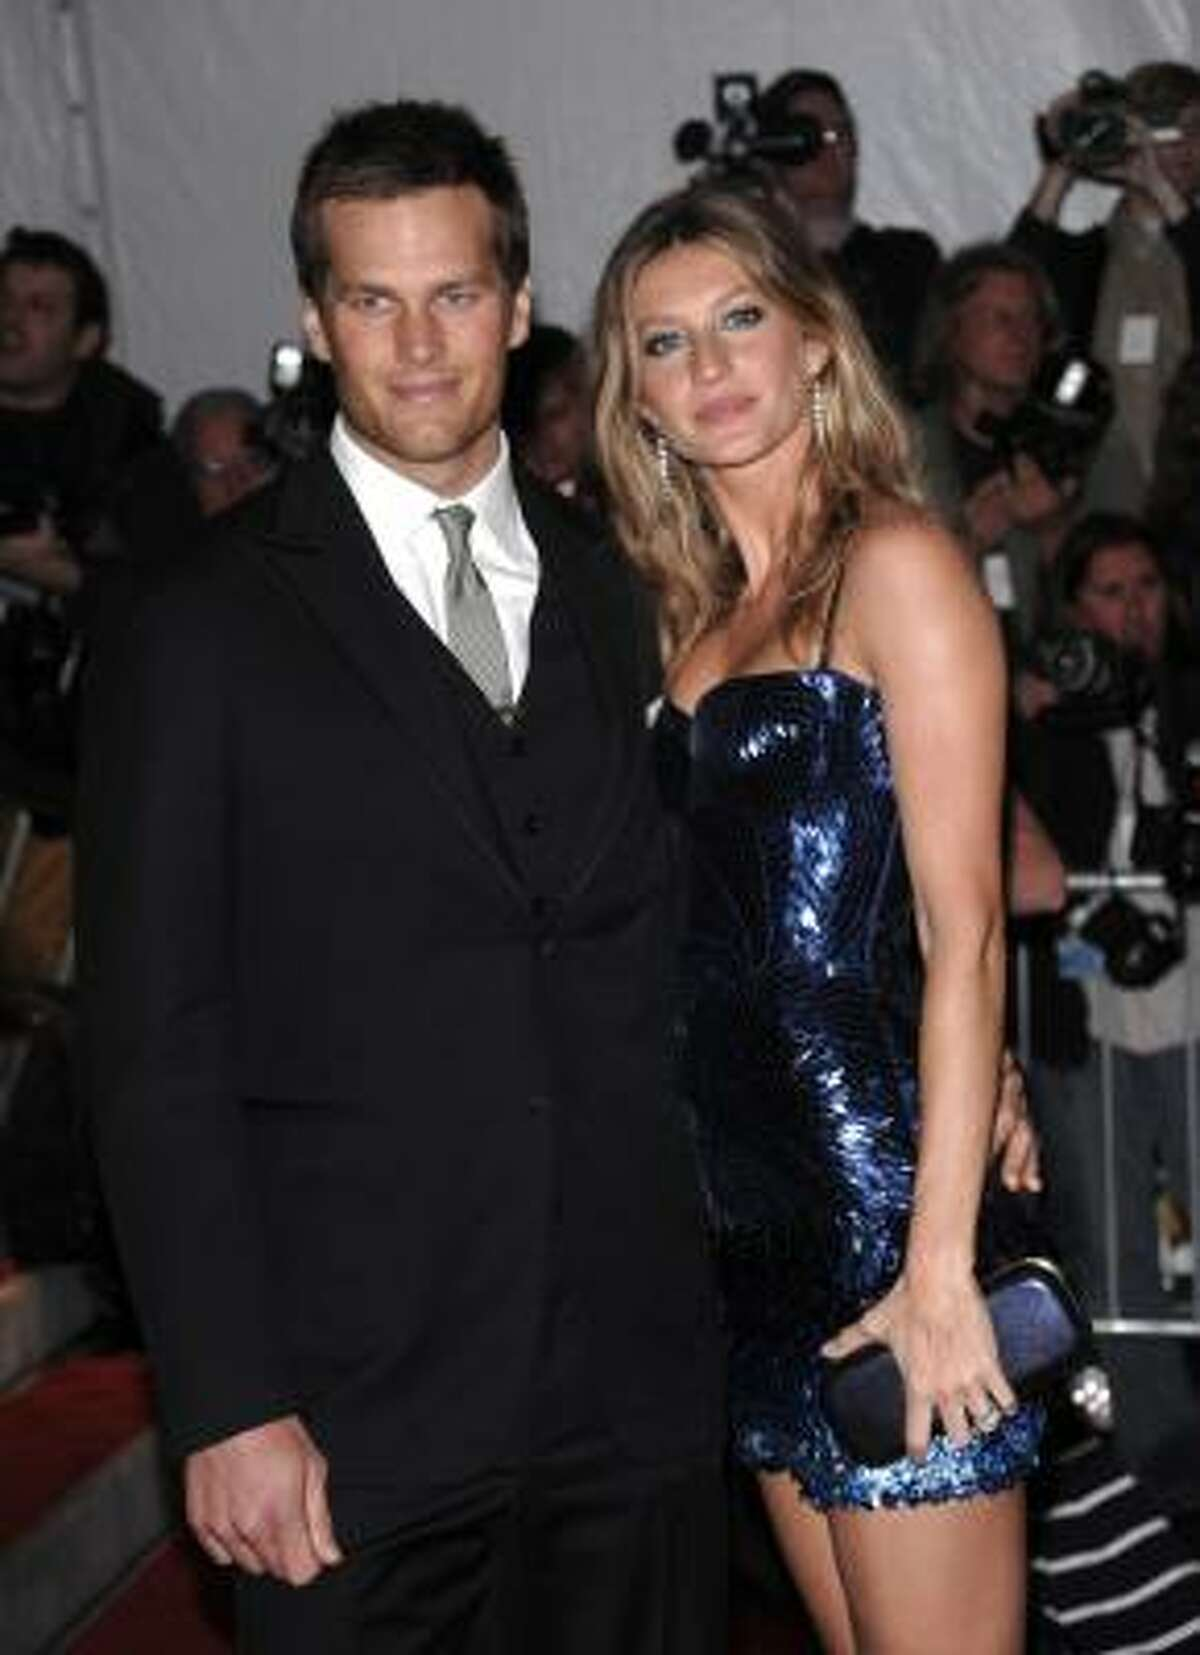 FILE - This is a May 4, 2009, file photo showing New England Patriots' Tom Brady and his wife, model Gisele Bundchen arriving at the Metropolitan Museum of Art's Costume Institute Gala in New York.